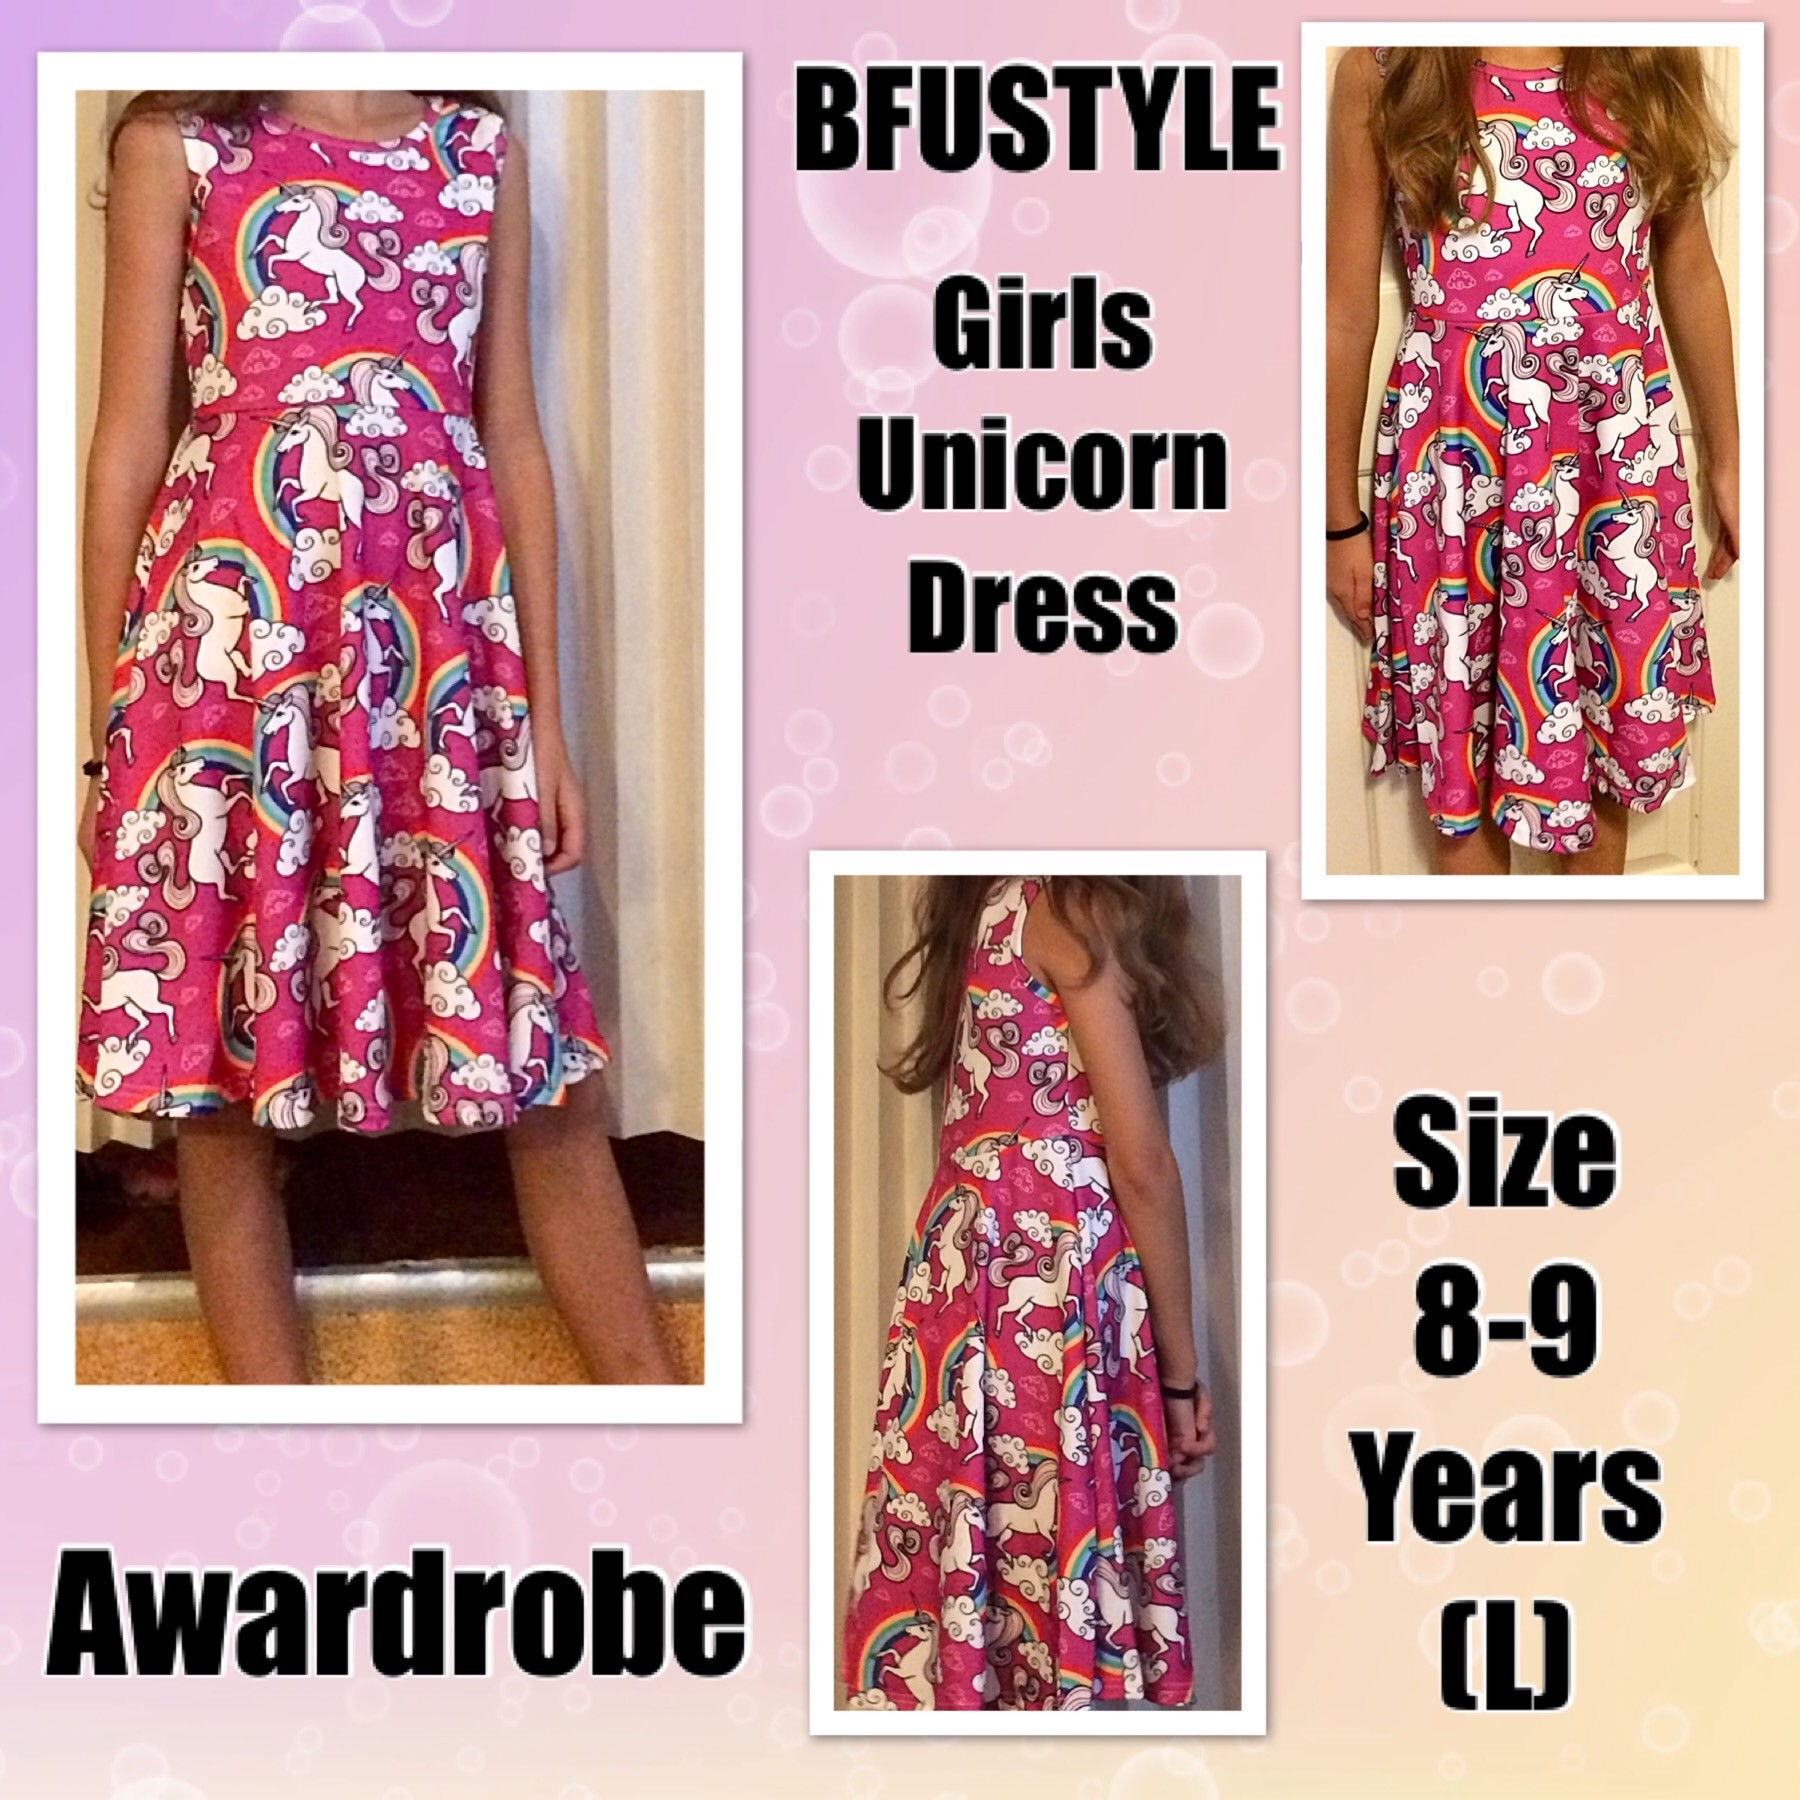 BFUSTYLE Girls Dress Unicorn, Teenage Girl Unicorn Print Sleeveless Casual Dresses Skirts, Size 8 Unicorn Gifts For Little Girls (Unicorn Dress, L) Sold by Awardrobe